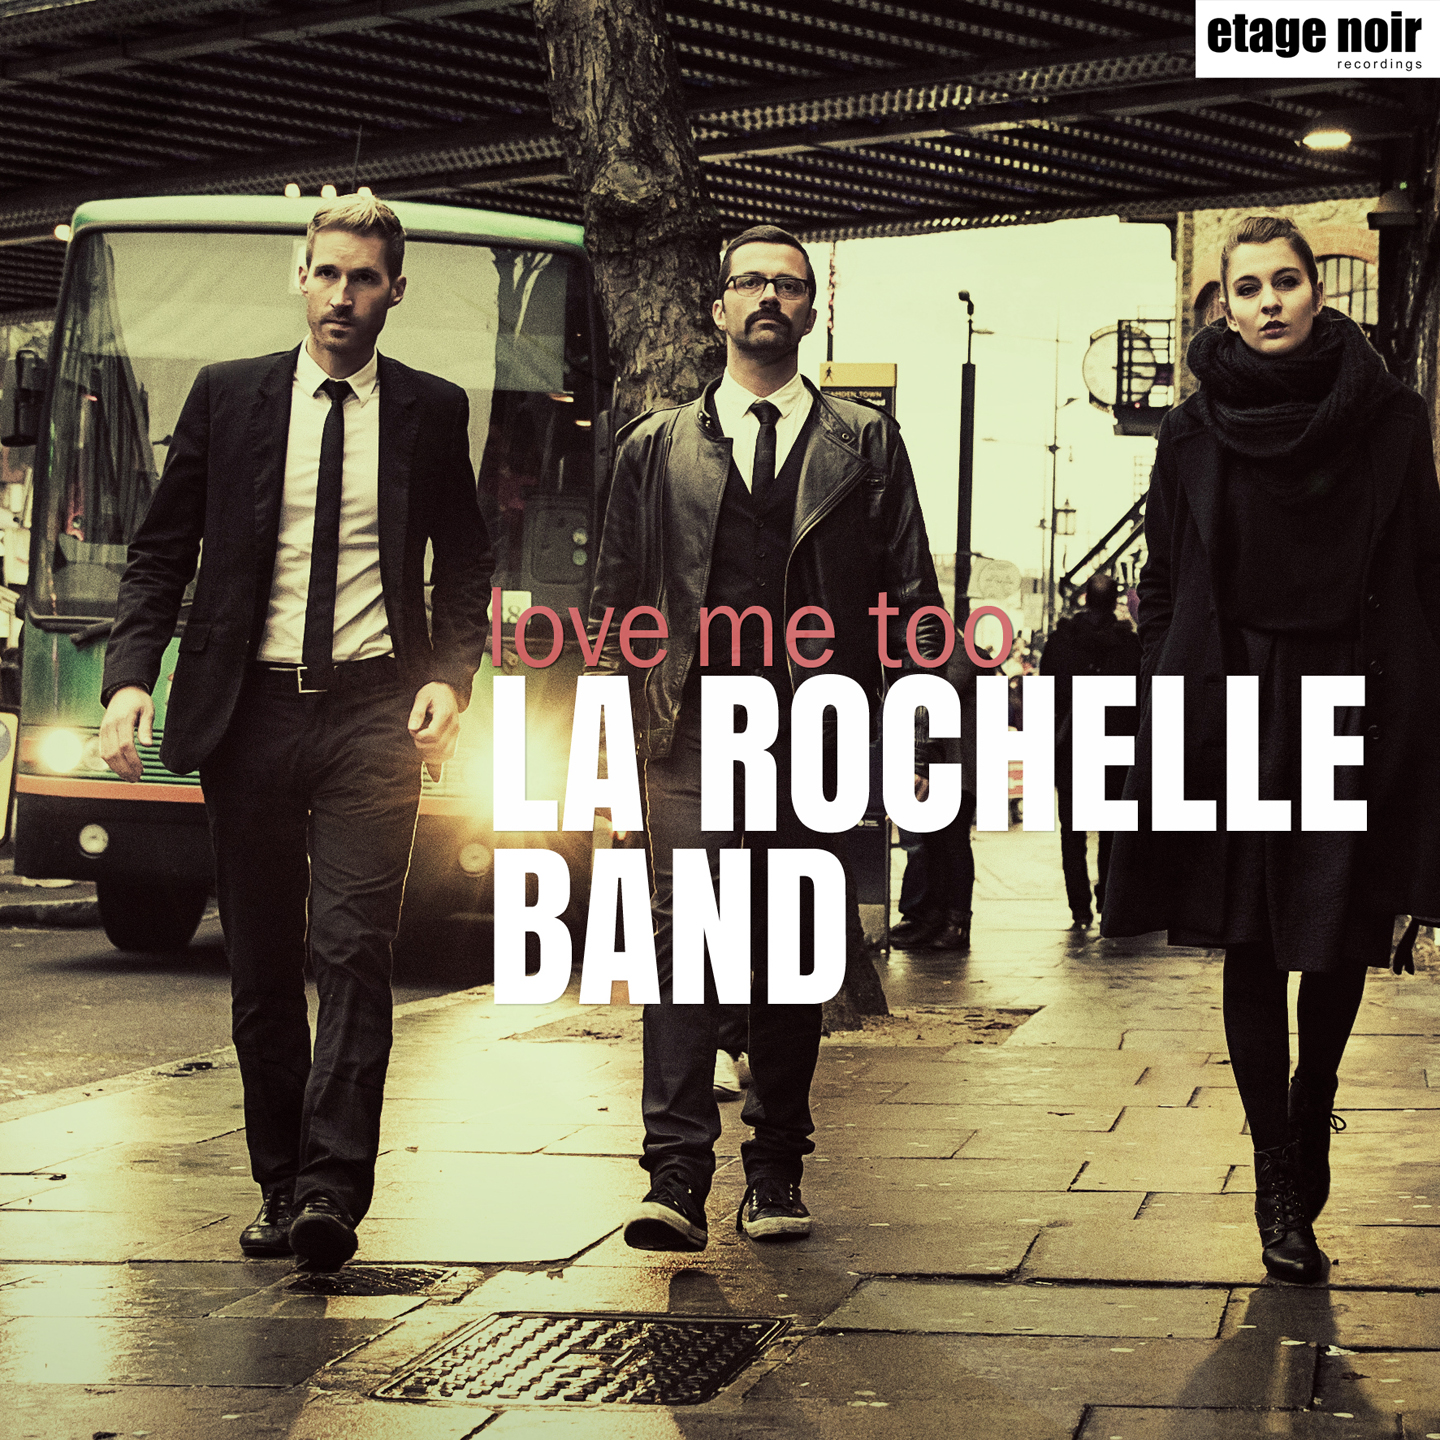 La Rochelle Band - Love Me Too